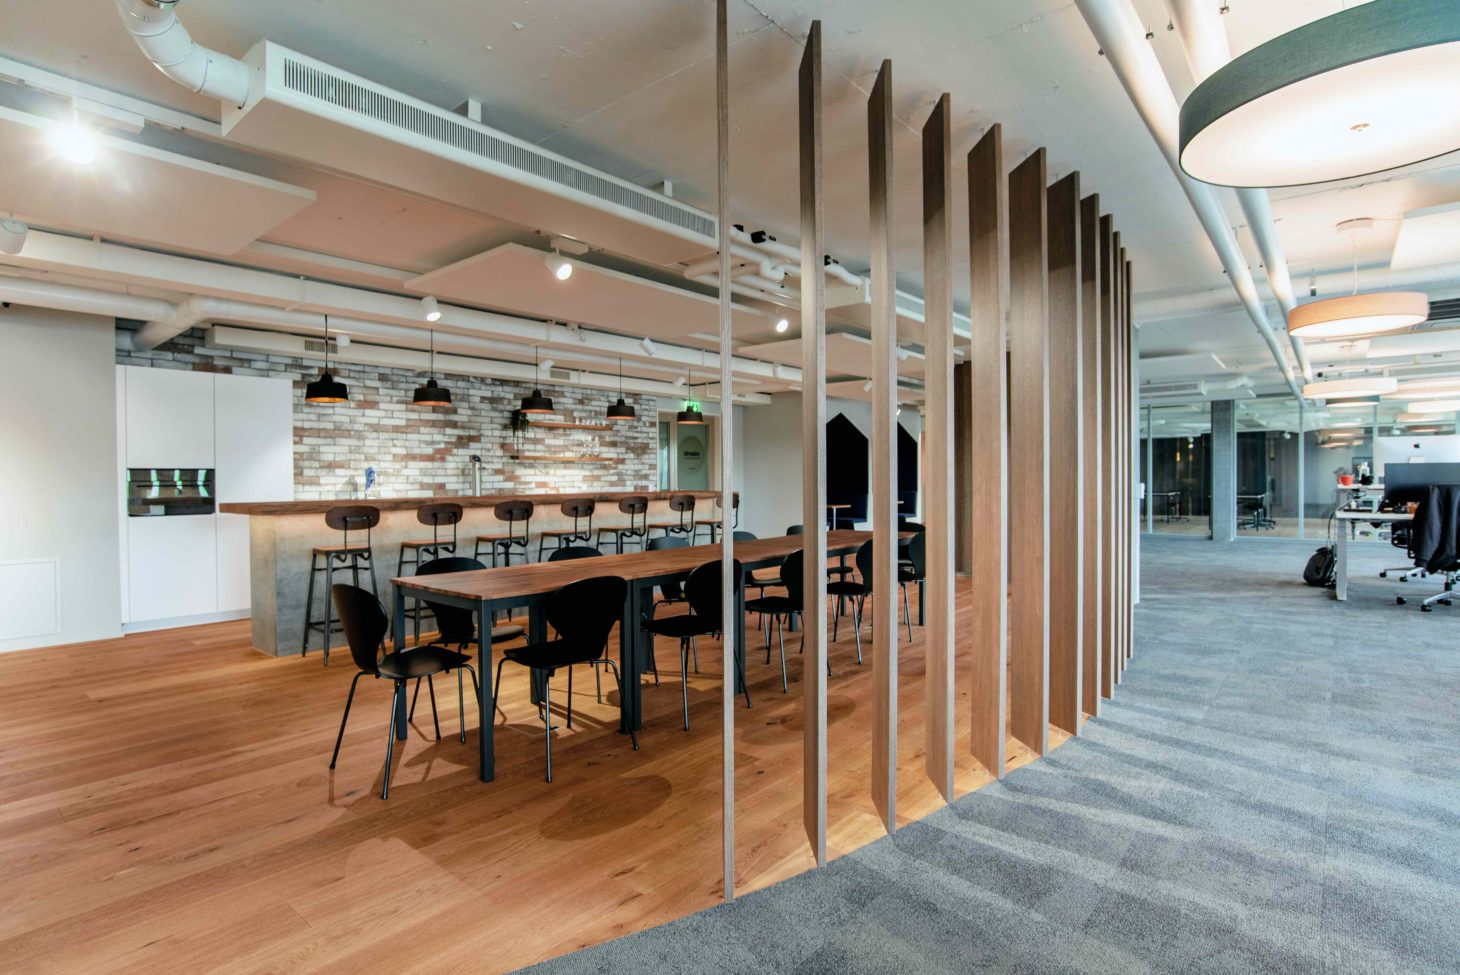 Dining area and kitchen at valantic Customer Engagement & Commerce in Switzerland, St. Gallen